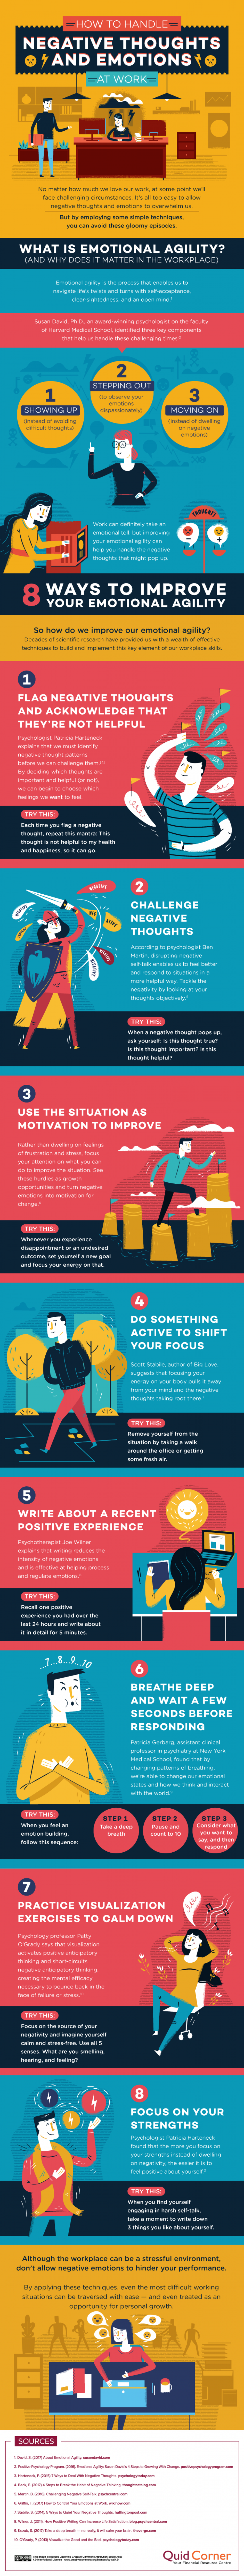 :::How to Handle Negative Thoughts and Emotions at Work::: Infographic